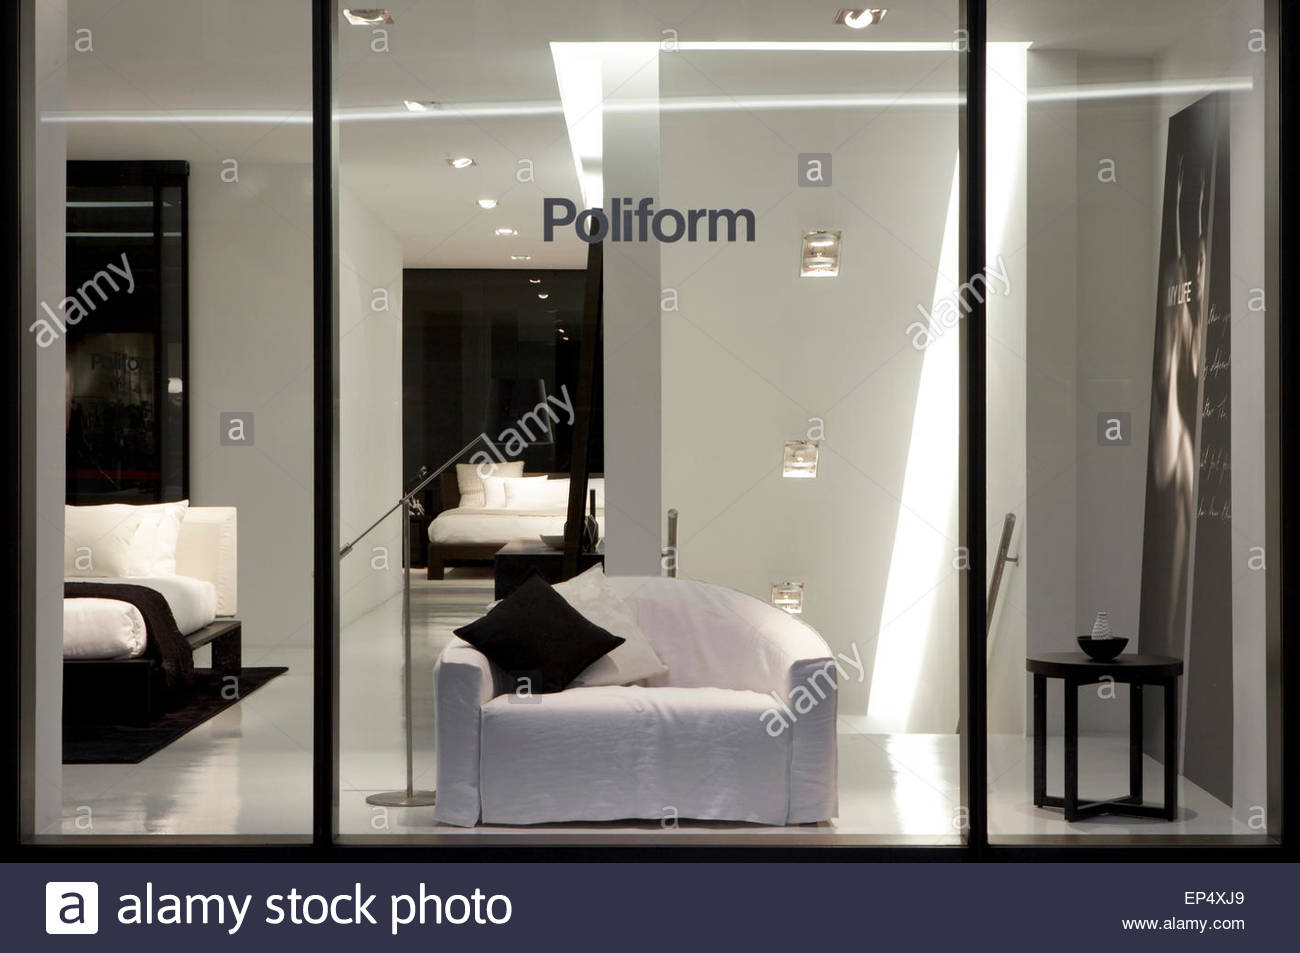 Display windows detail poliform showroom london london united stock photo 82472609 alamy - Poliform showroom ...